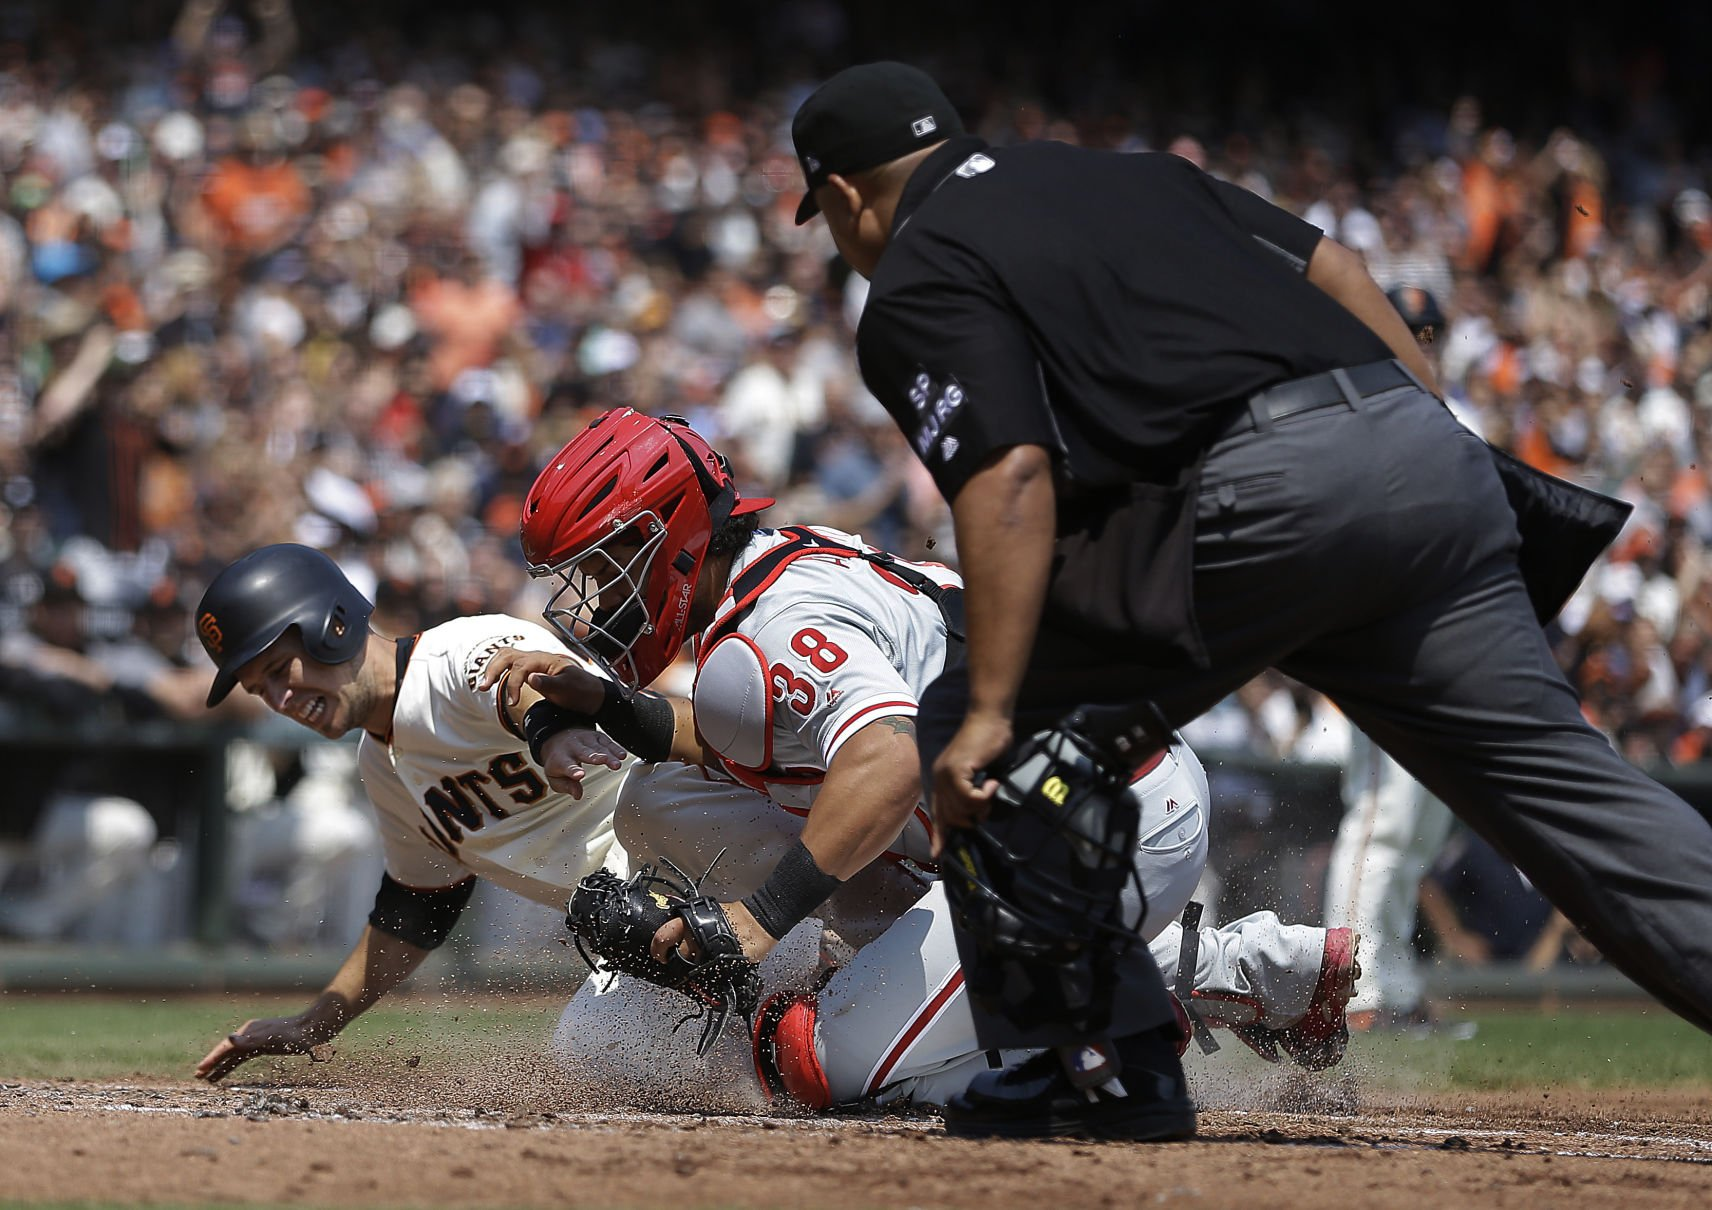 Giants Lose Season Series to the Worst Team in Baseball